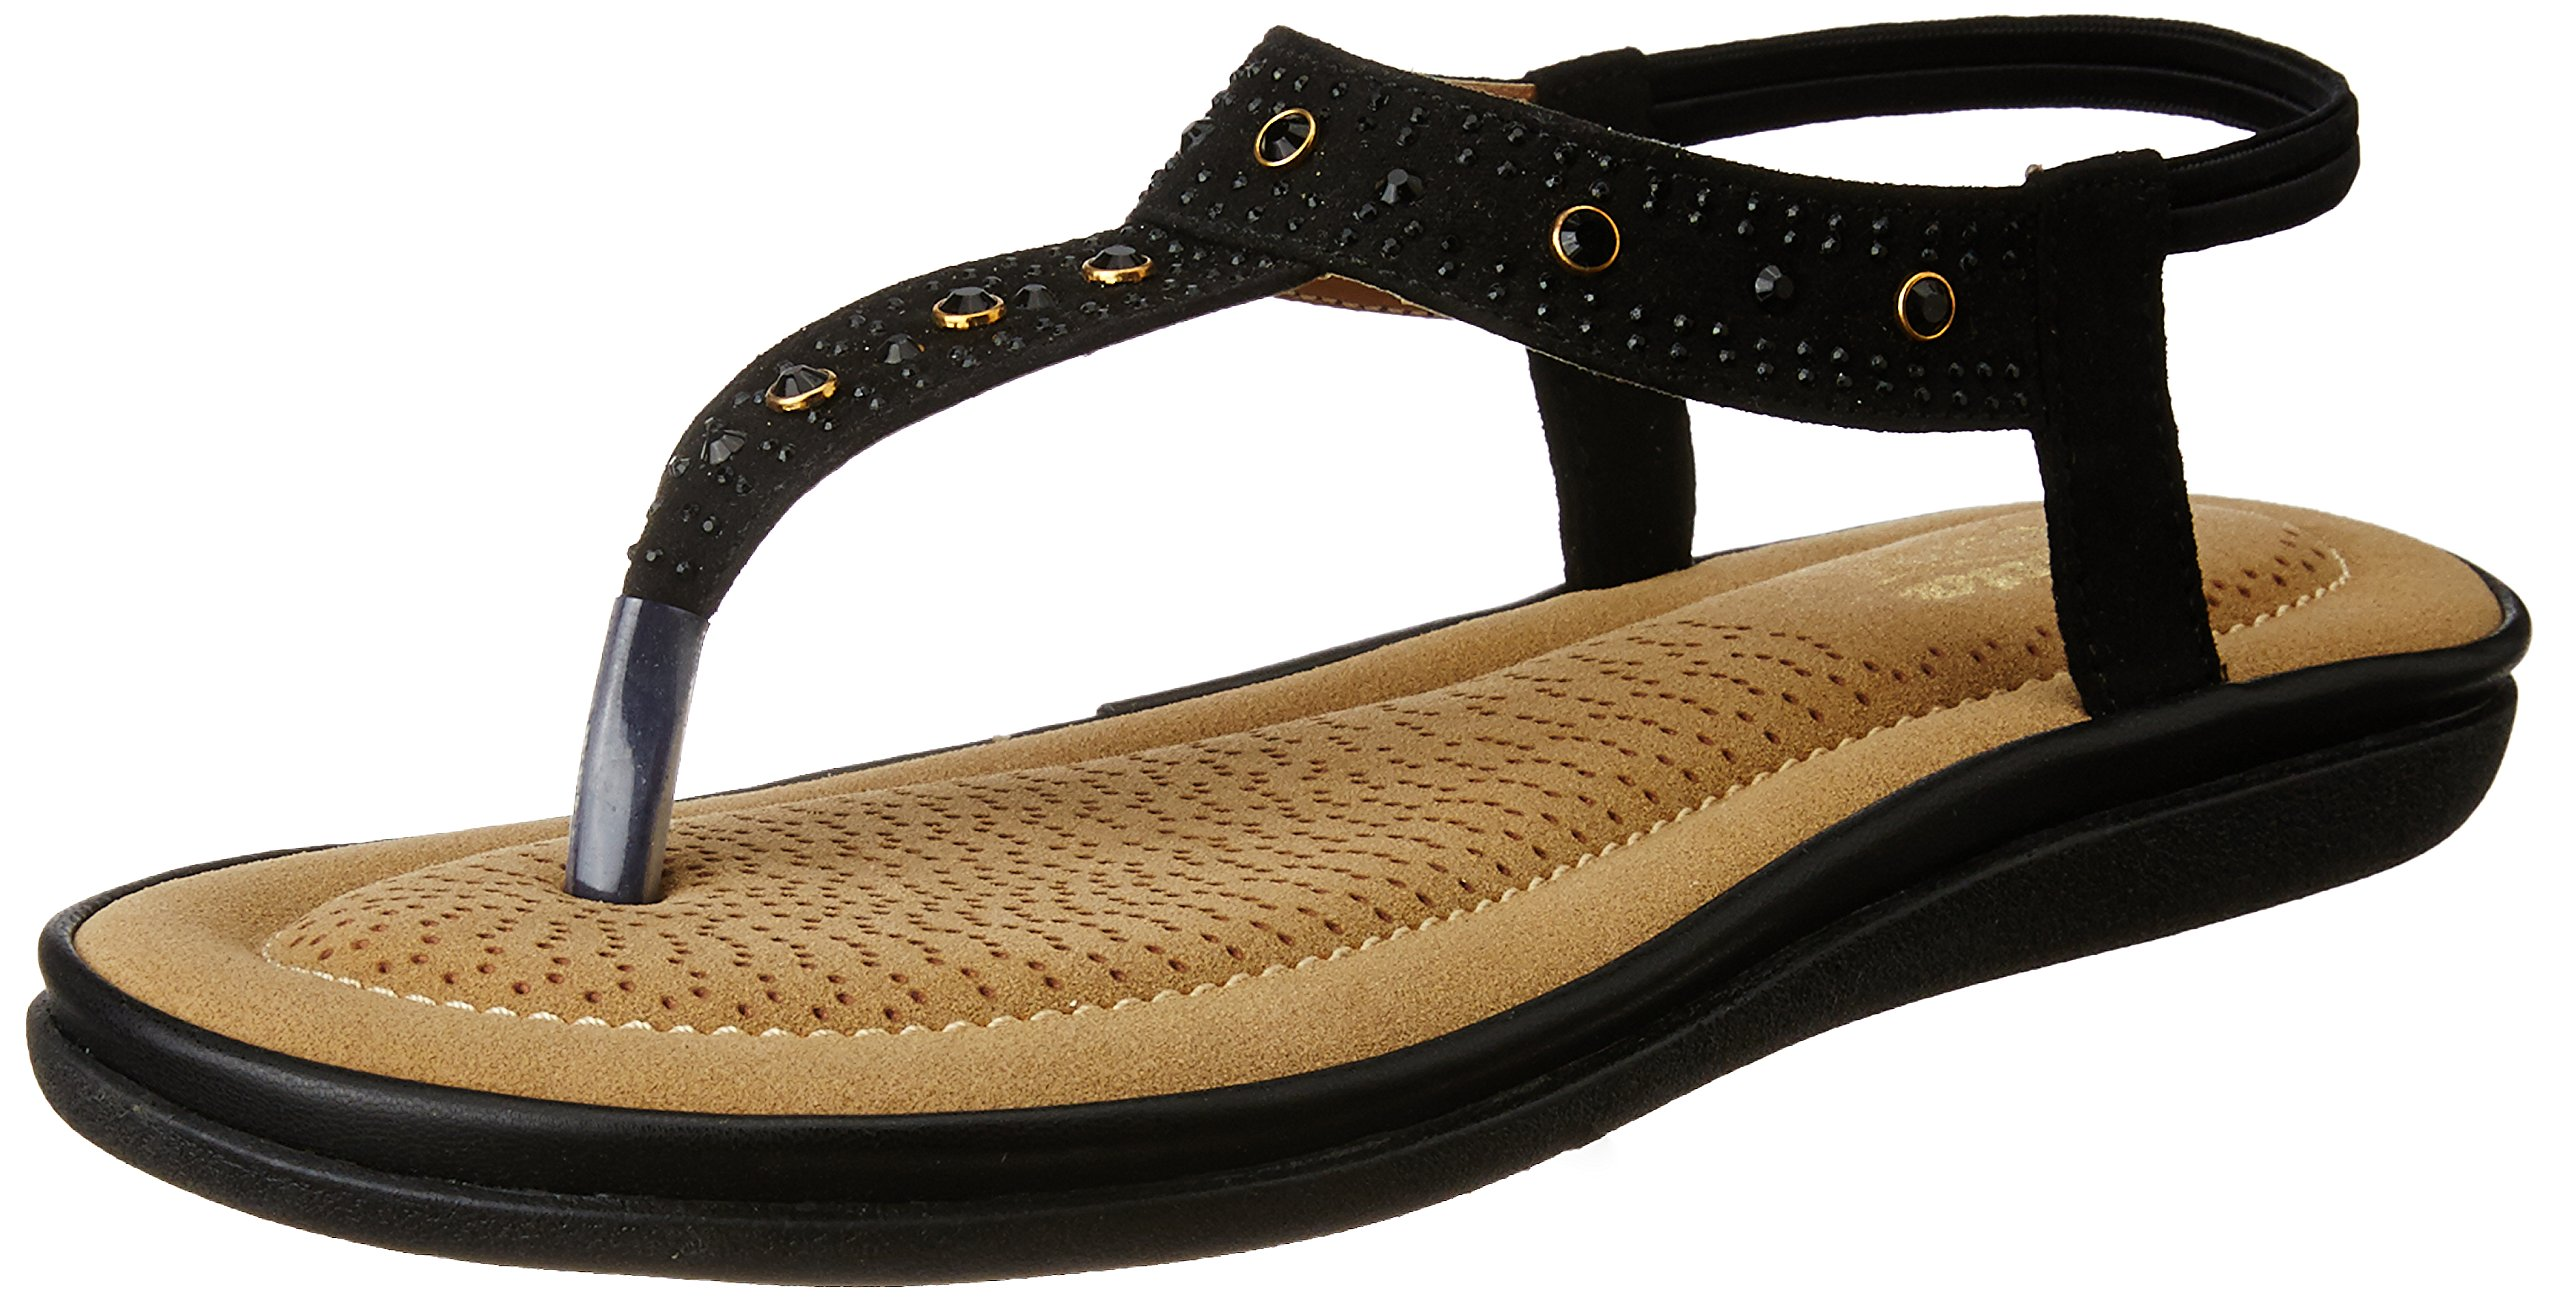 aaf313f1e1a BATA Women s Diamonte 1 Fashion Sandals - Gia Designer